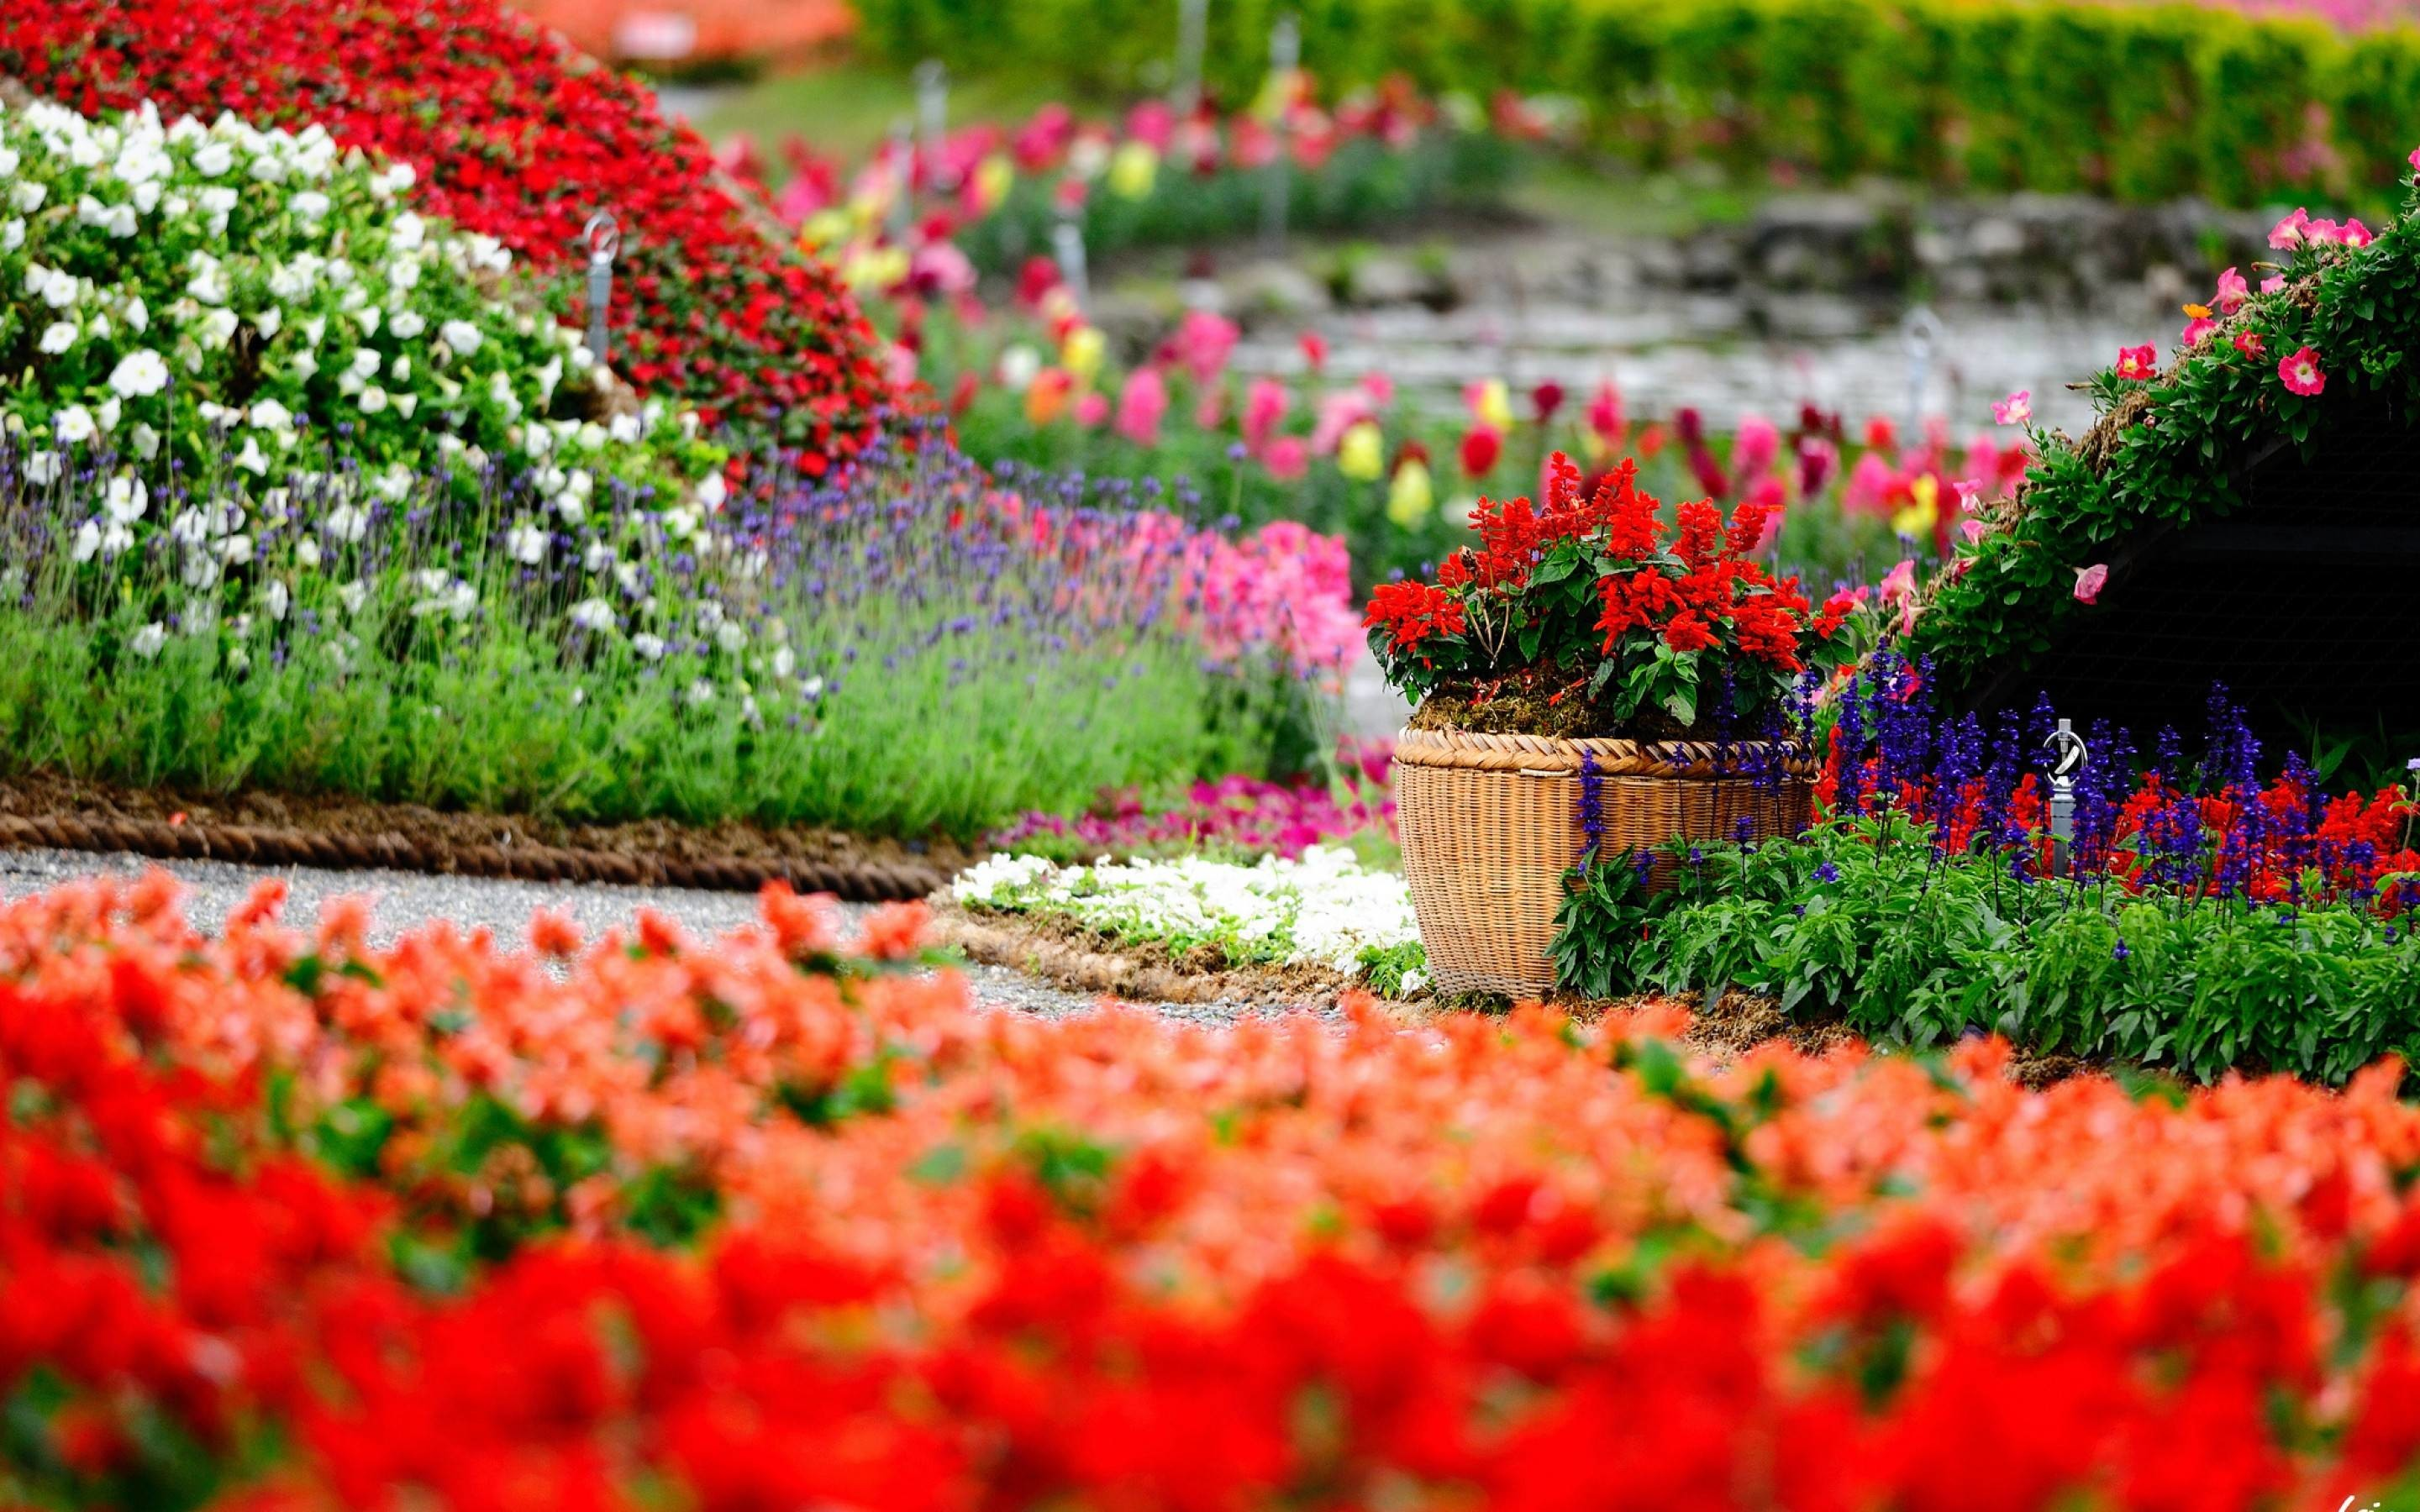 1920x1080 Incredible Free Hd Garden Wallpapers Download Flower Images Royalty